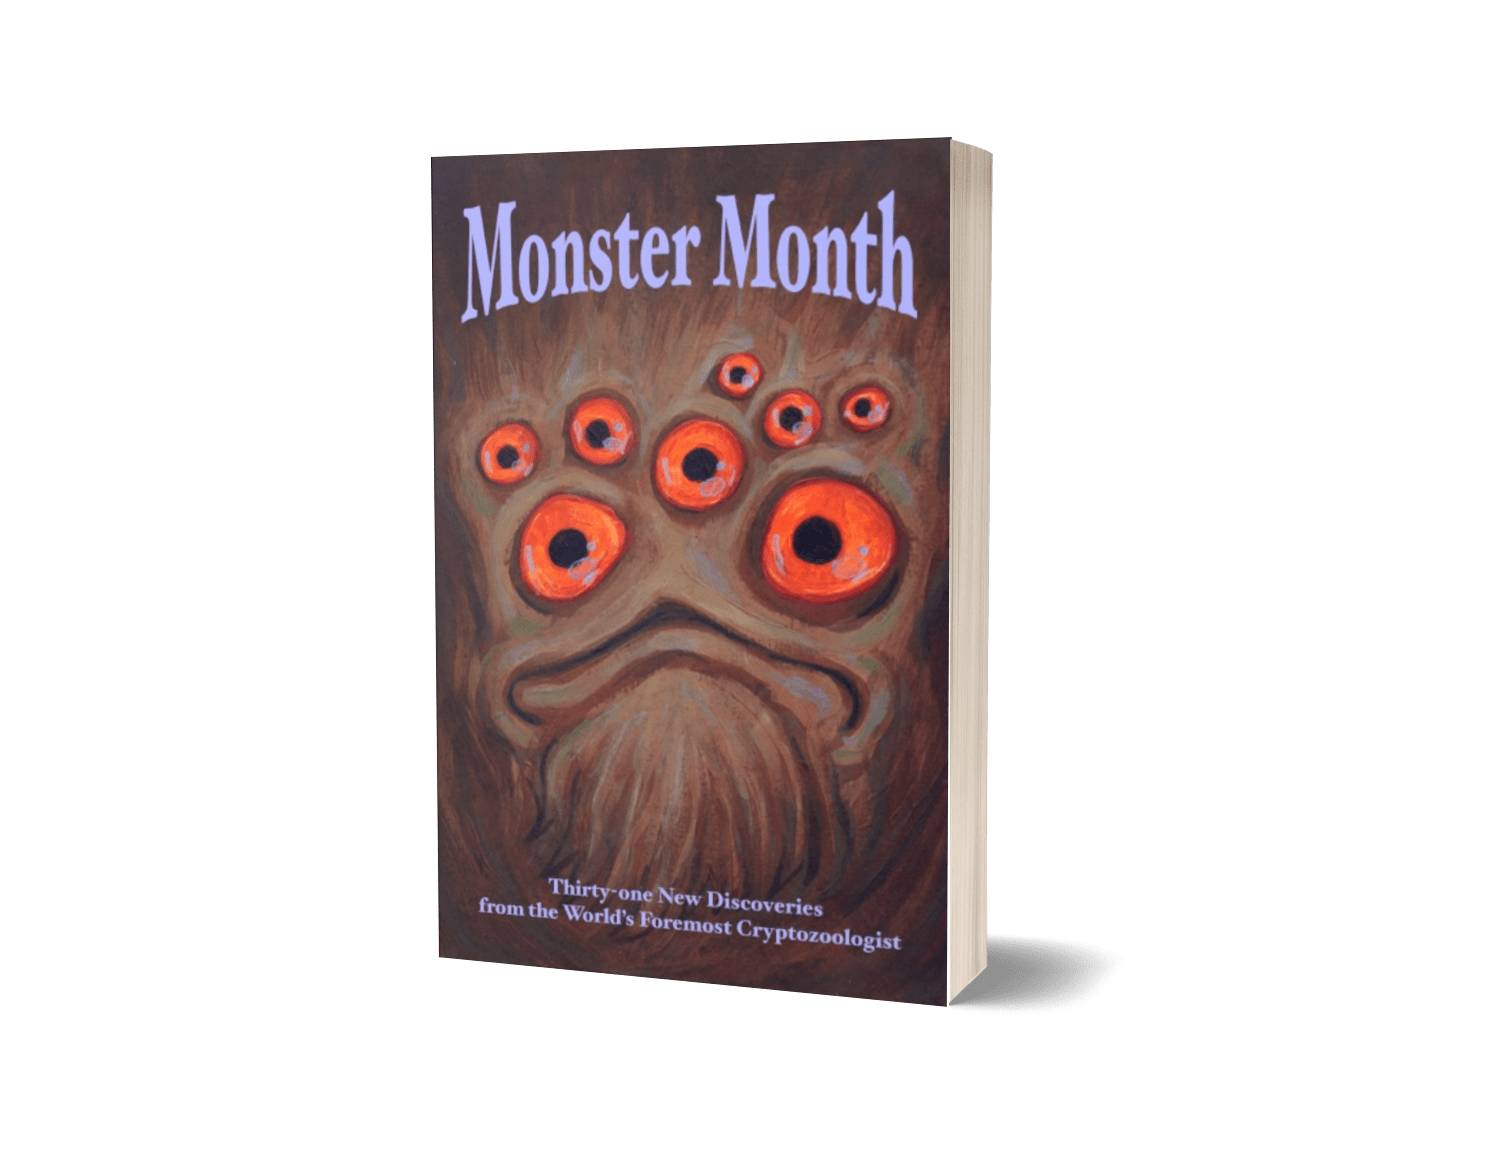 Monster Month